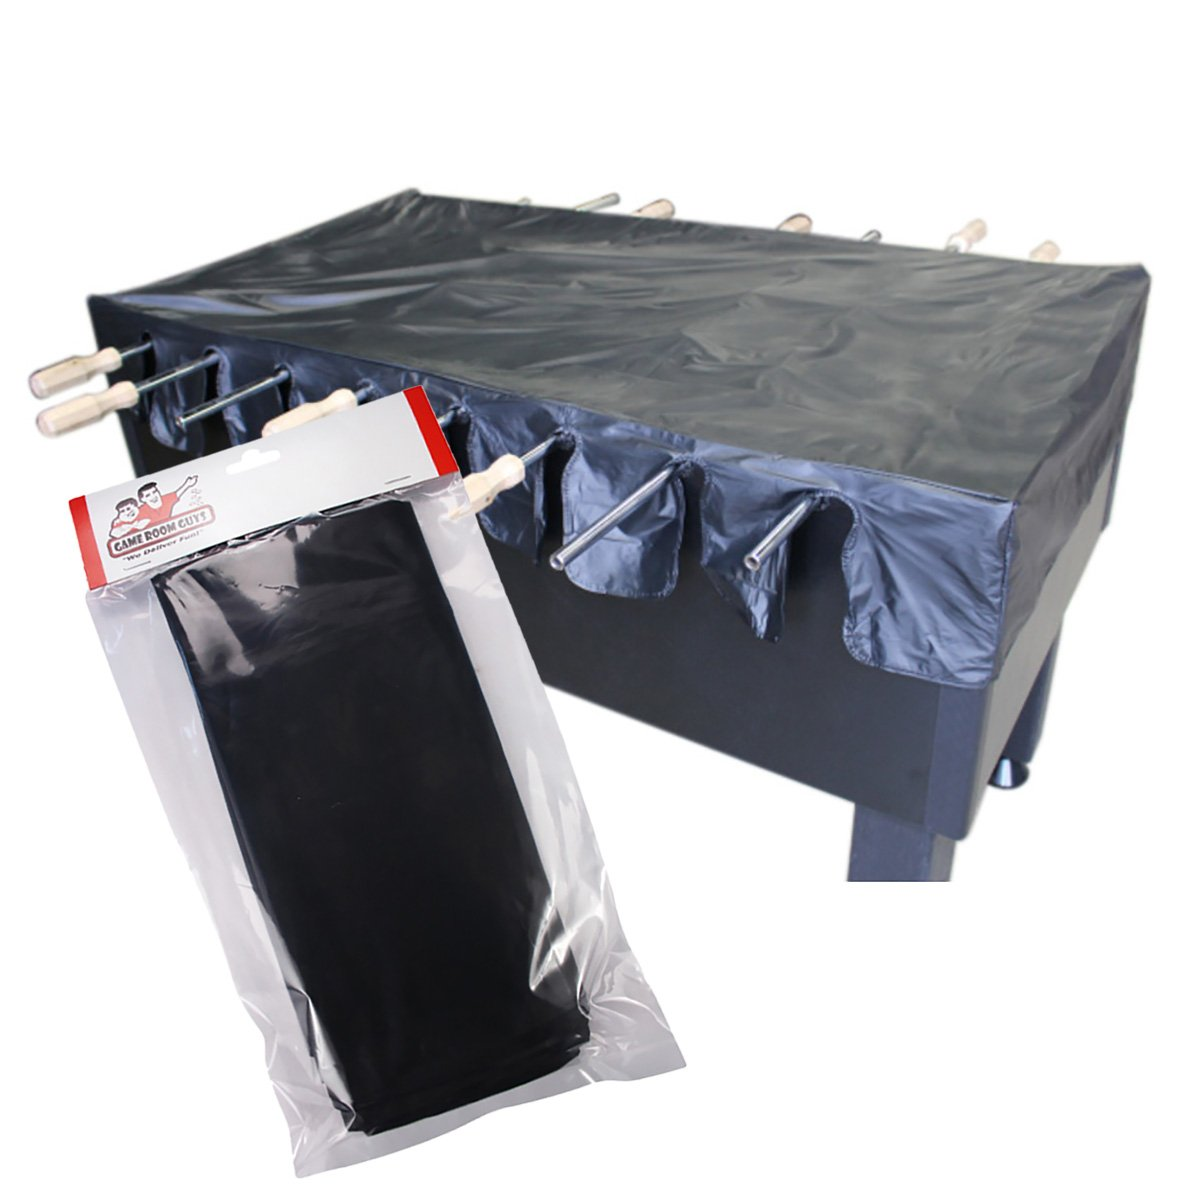 Game Room Guys Black Universal Foosball Table Cover by Game Room Guys